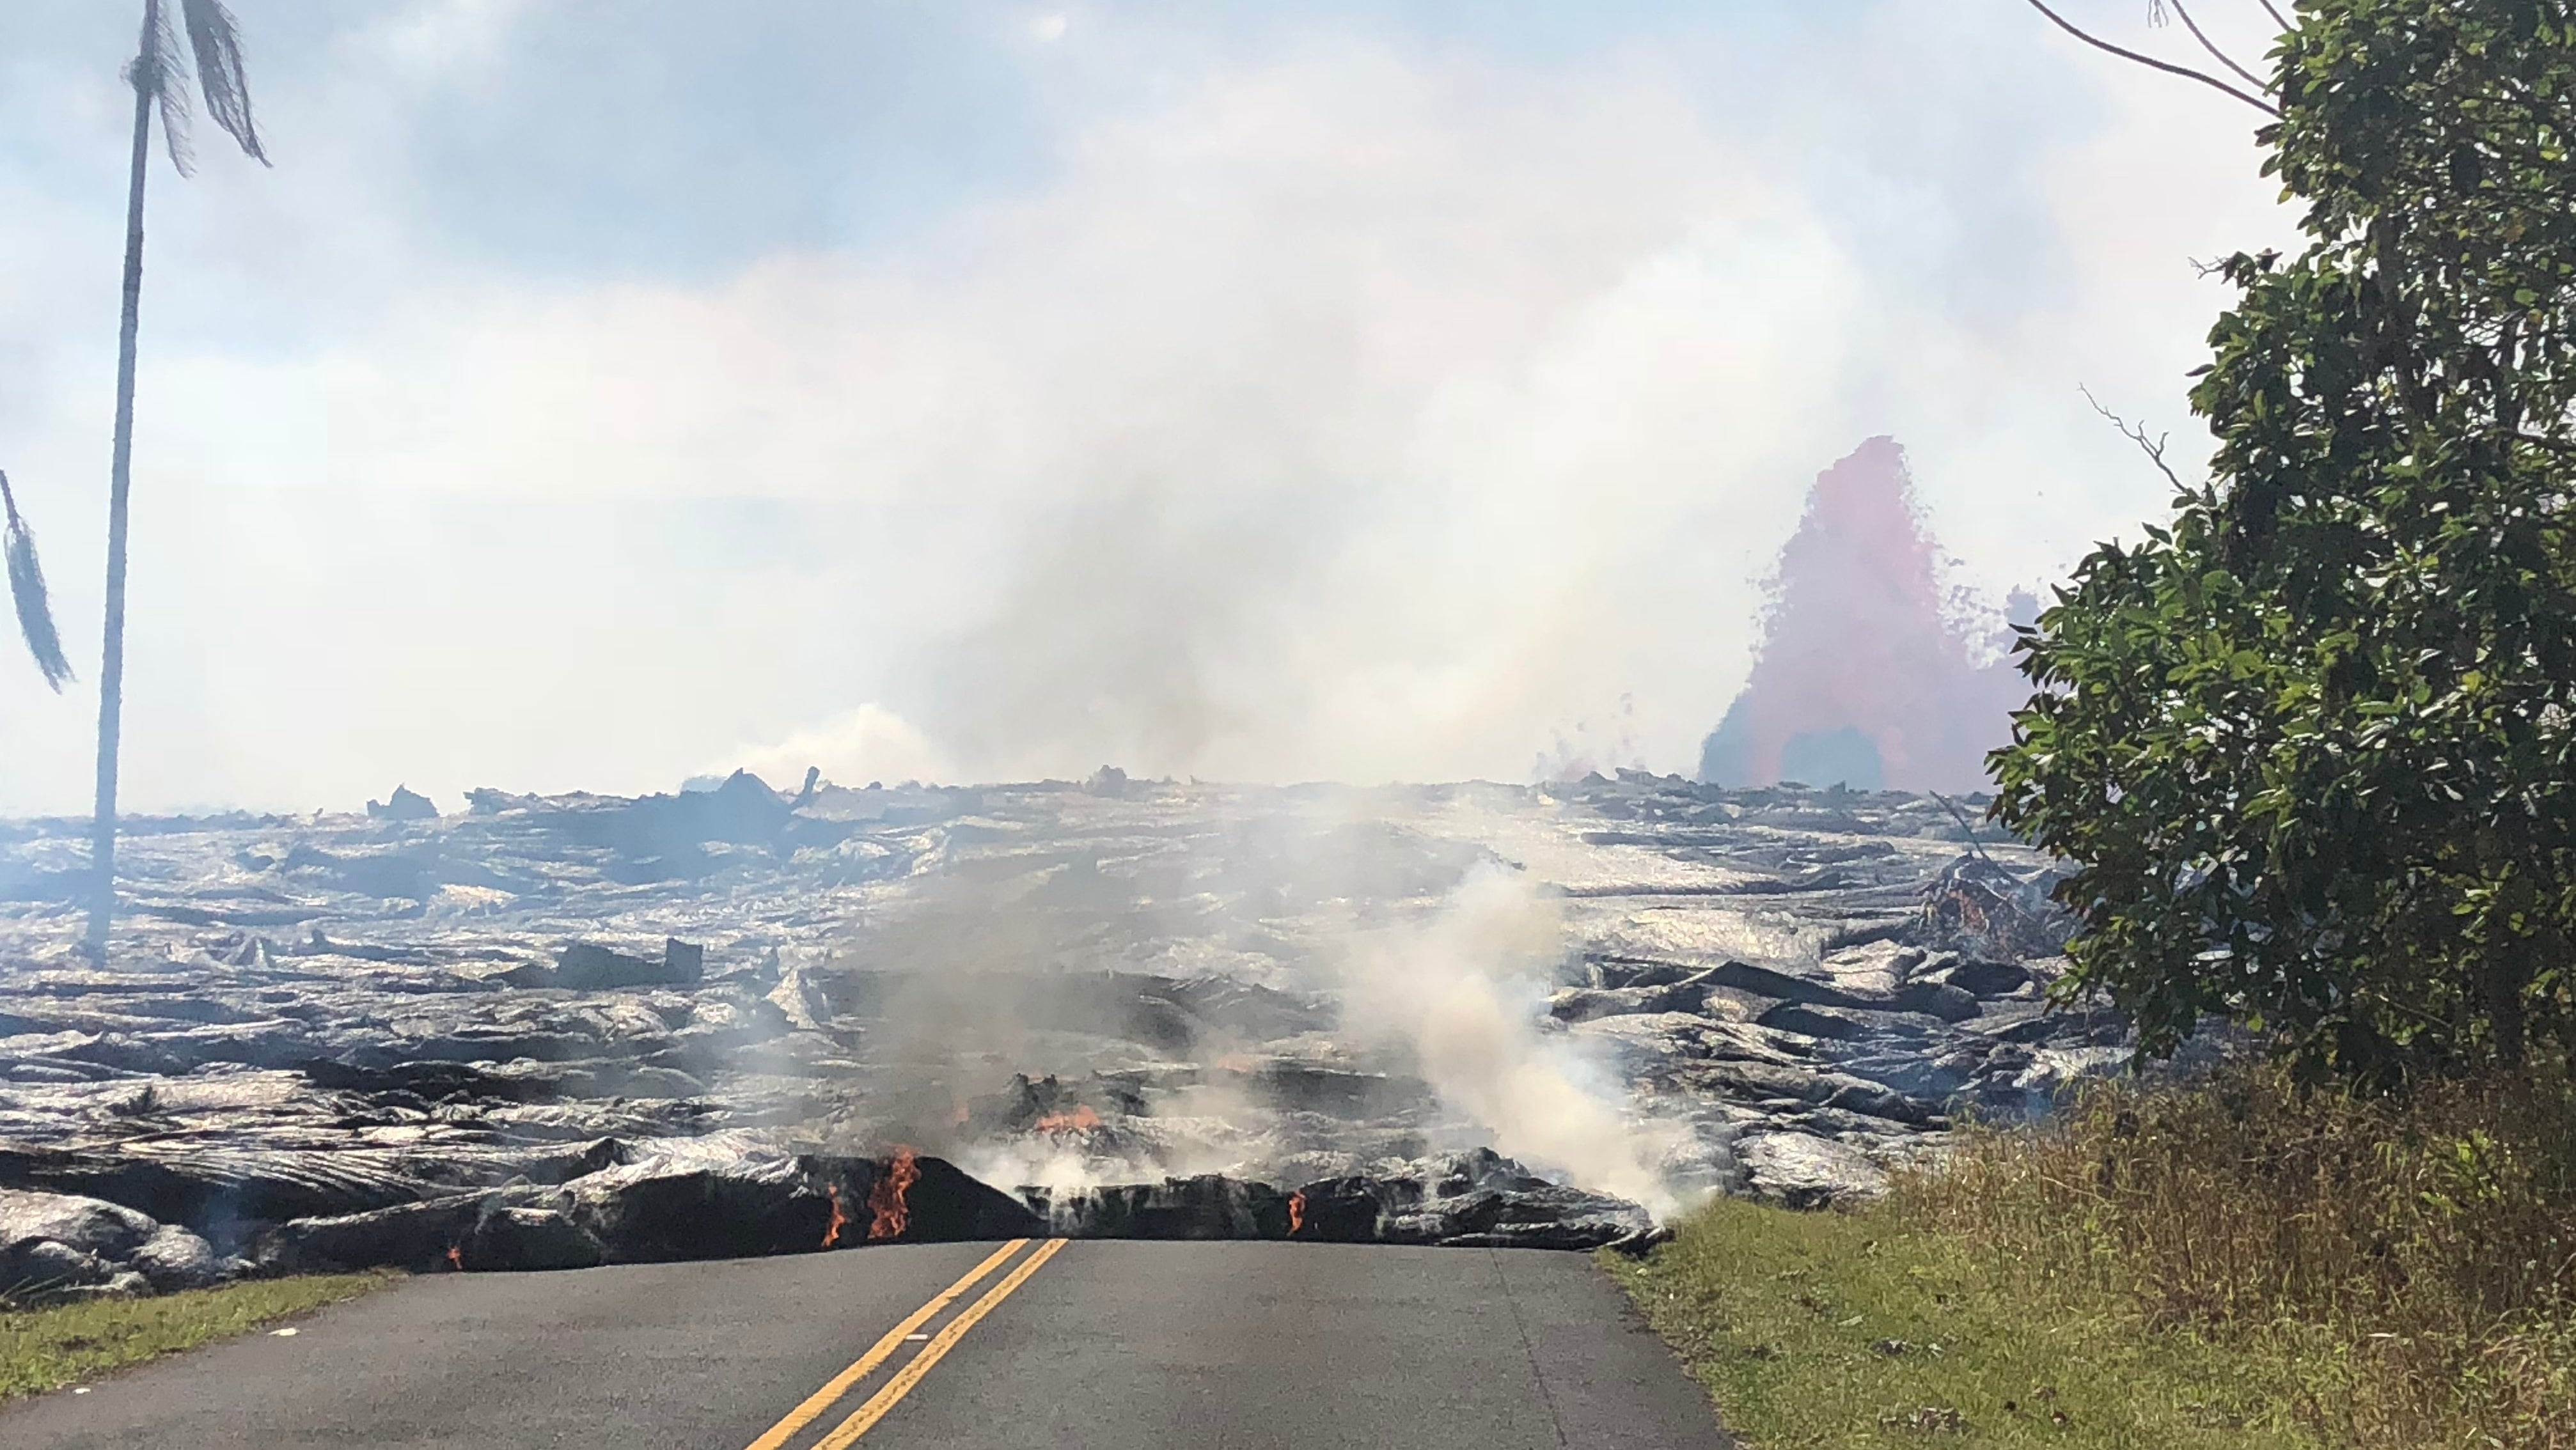 Lava From Kilauea Volcano Reaches Well At Geothermal Power Plant